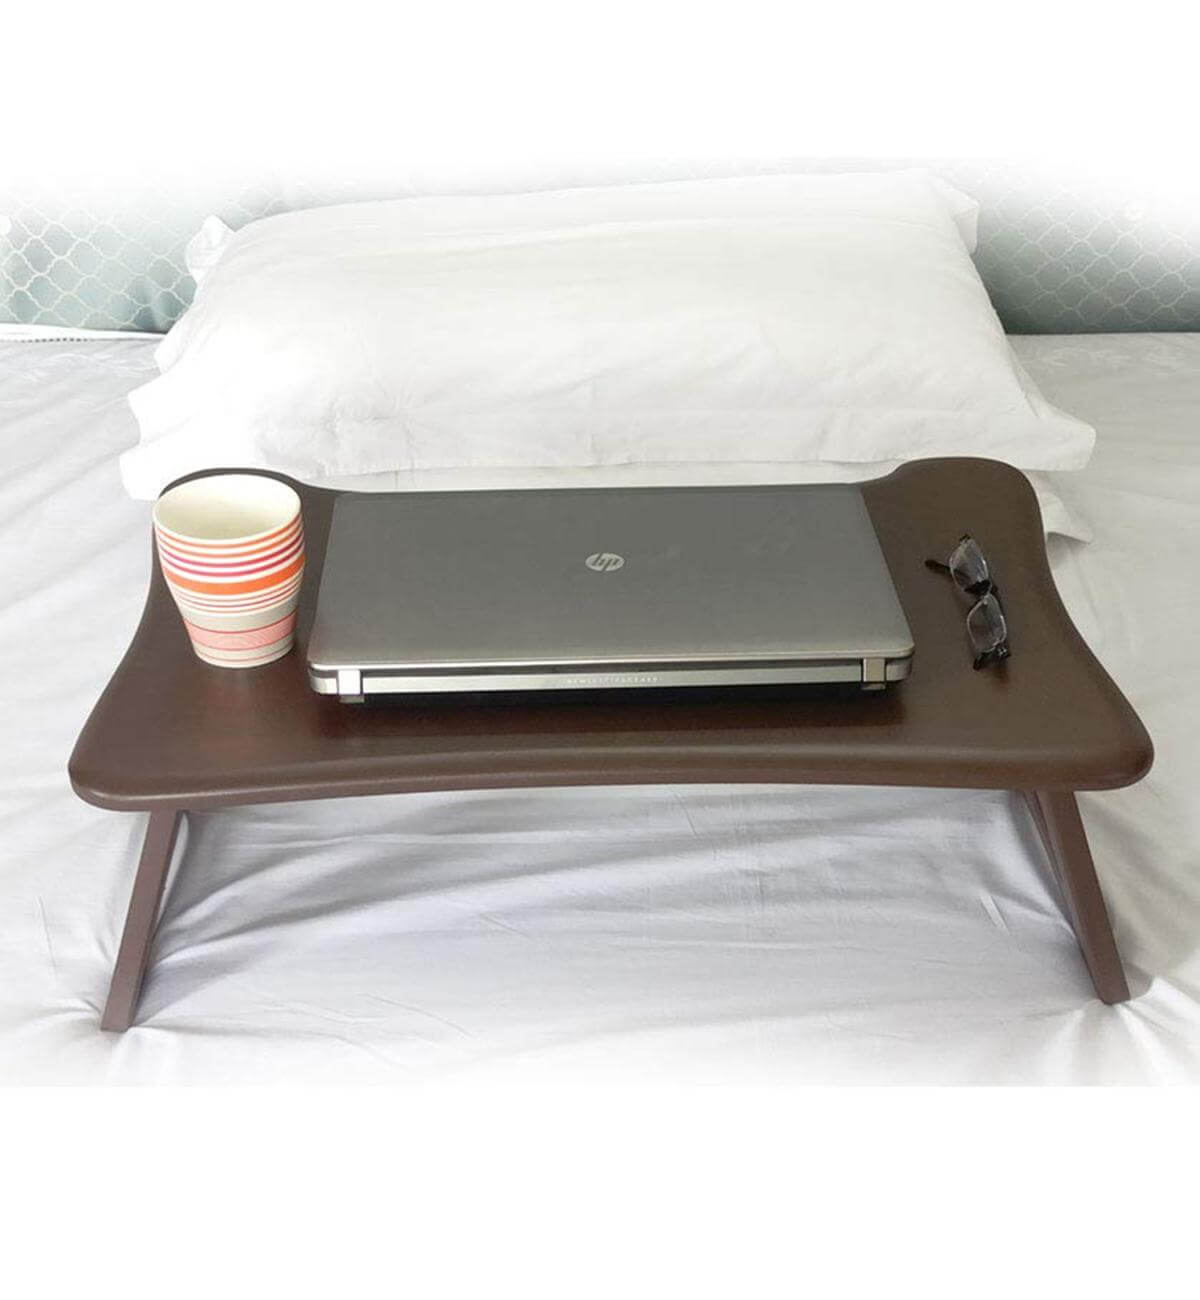 Furnezee Lapdesk laptop table foldable